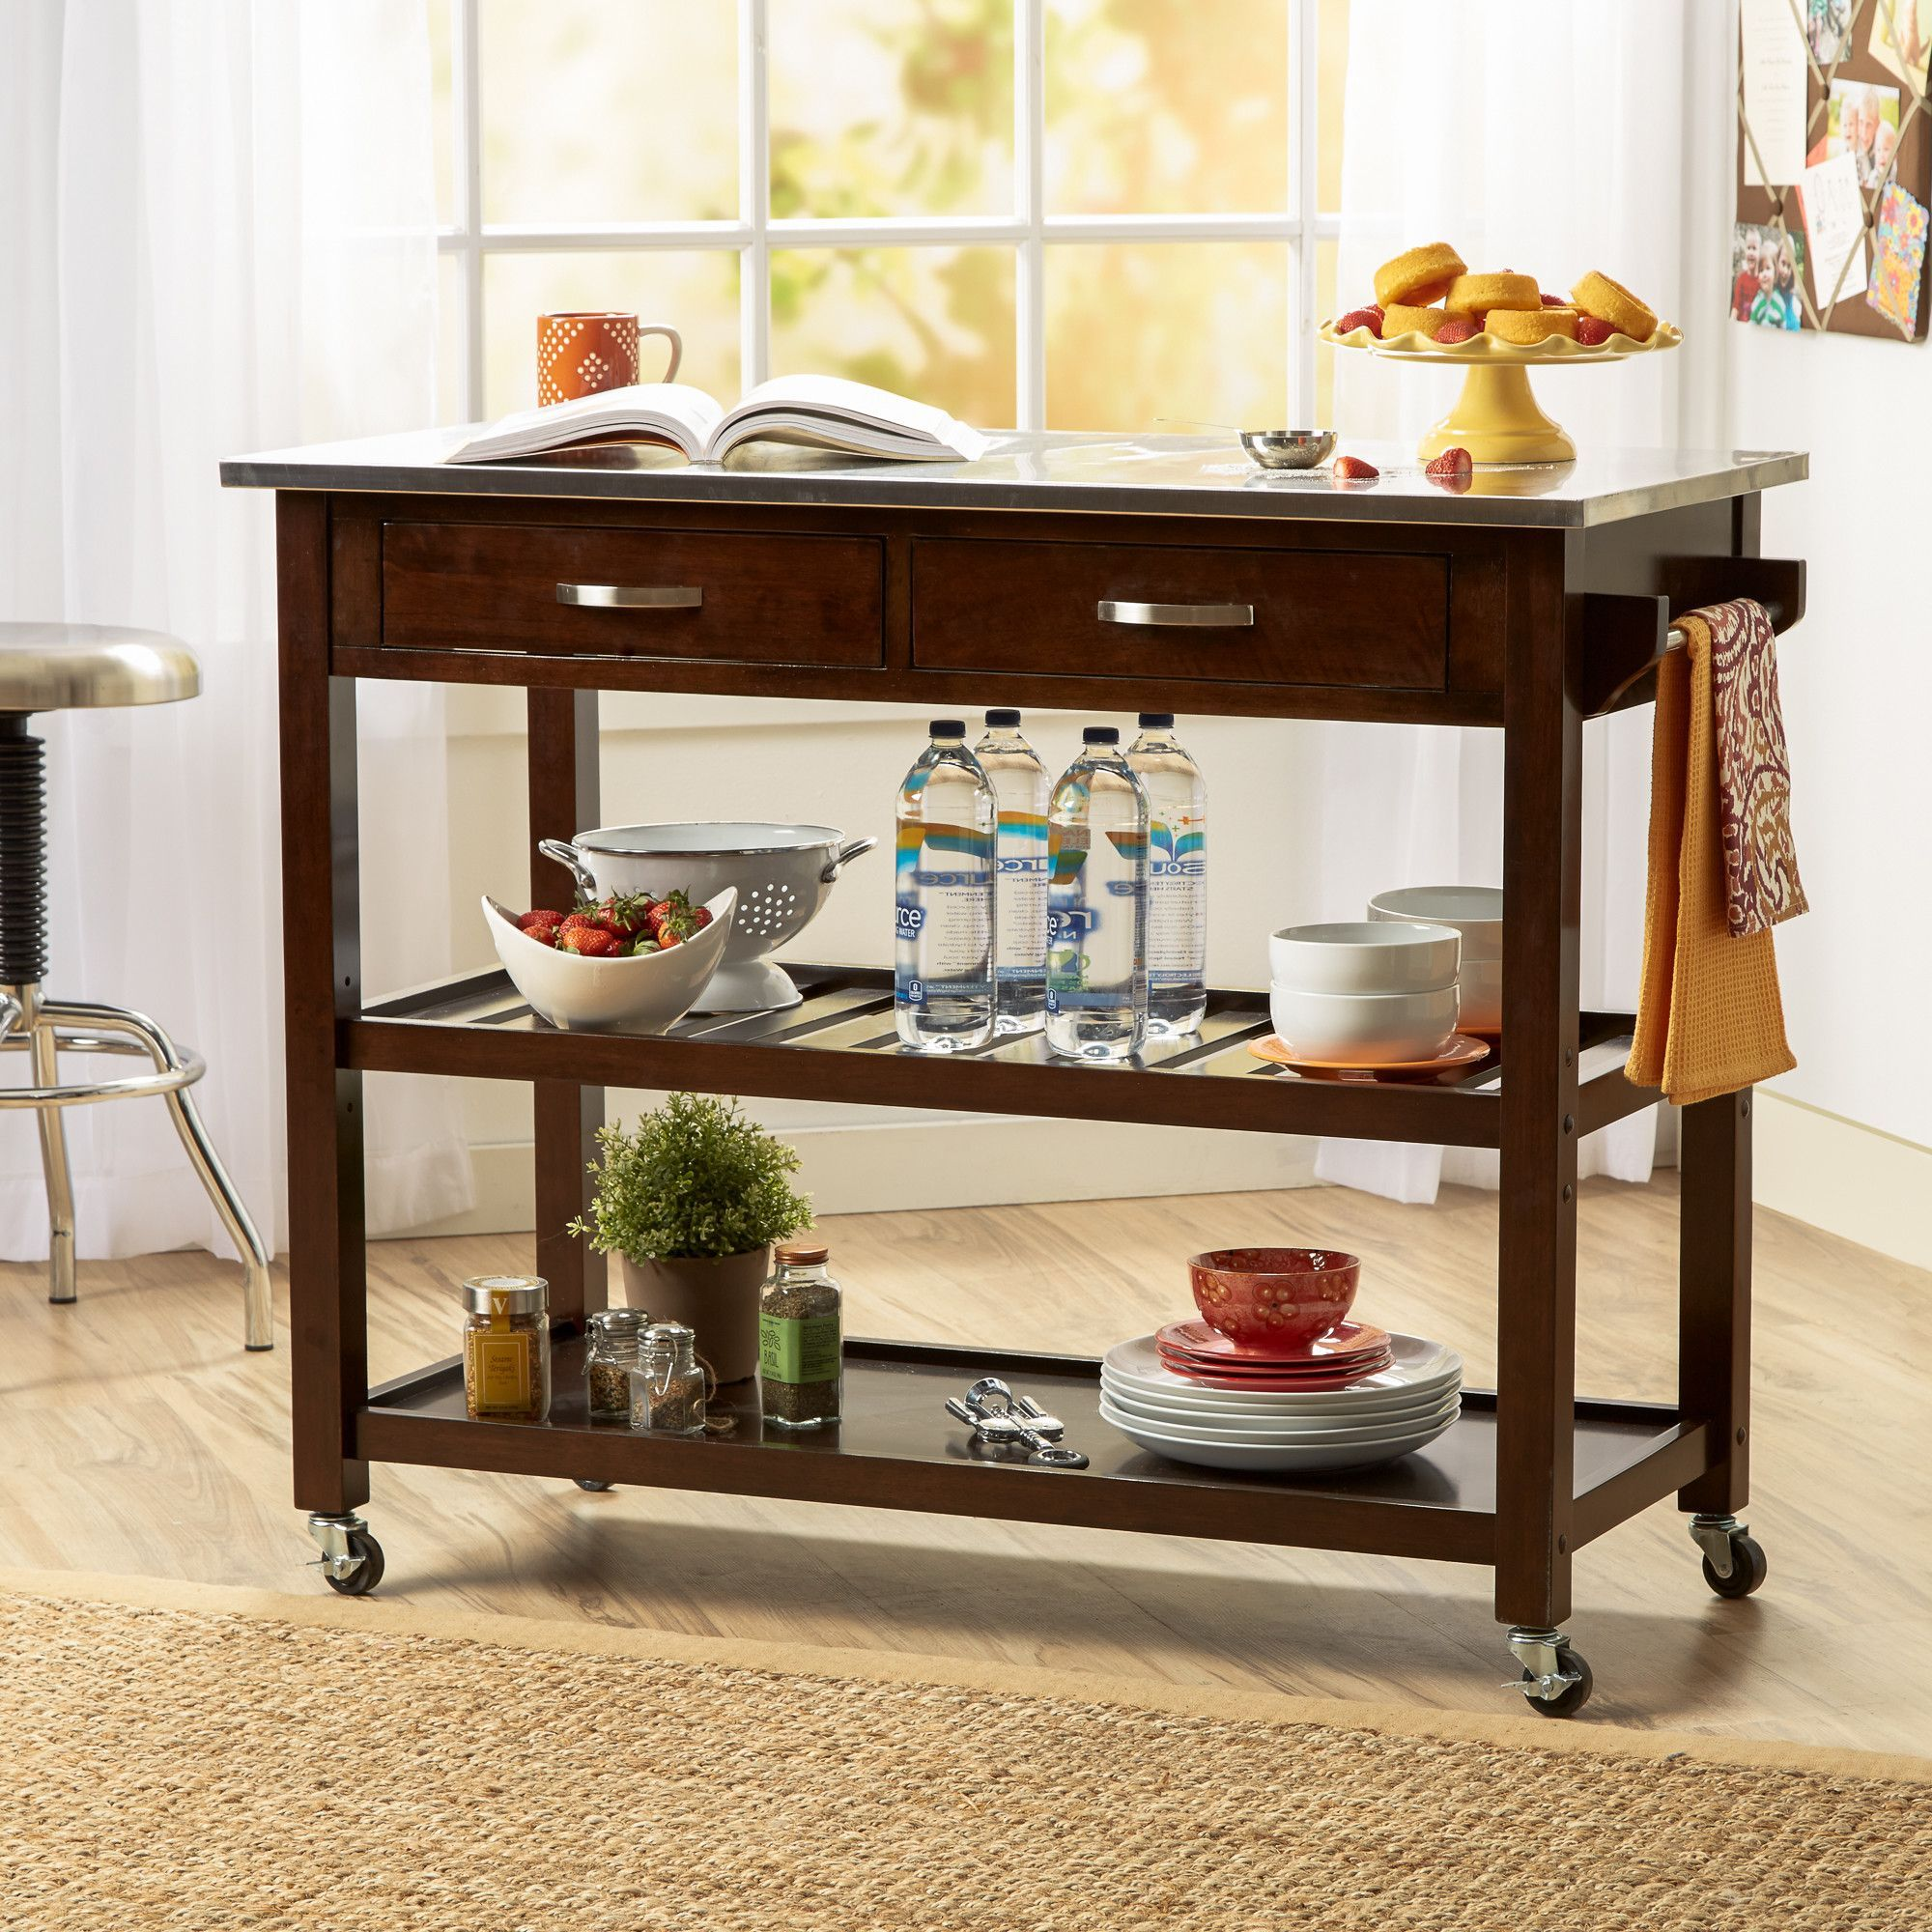 Castleton Home Kitchen Island Cart With Stainless Steel